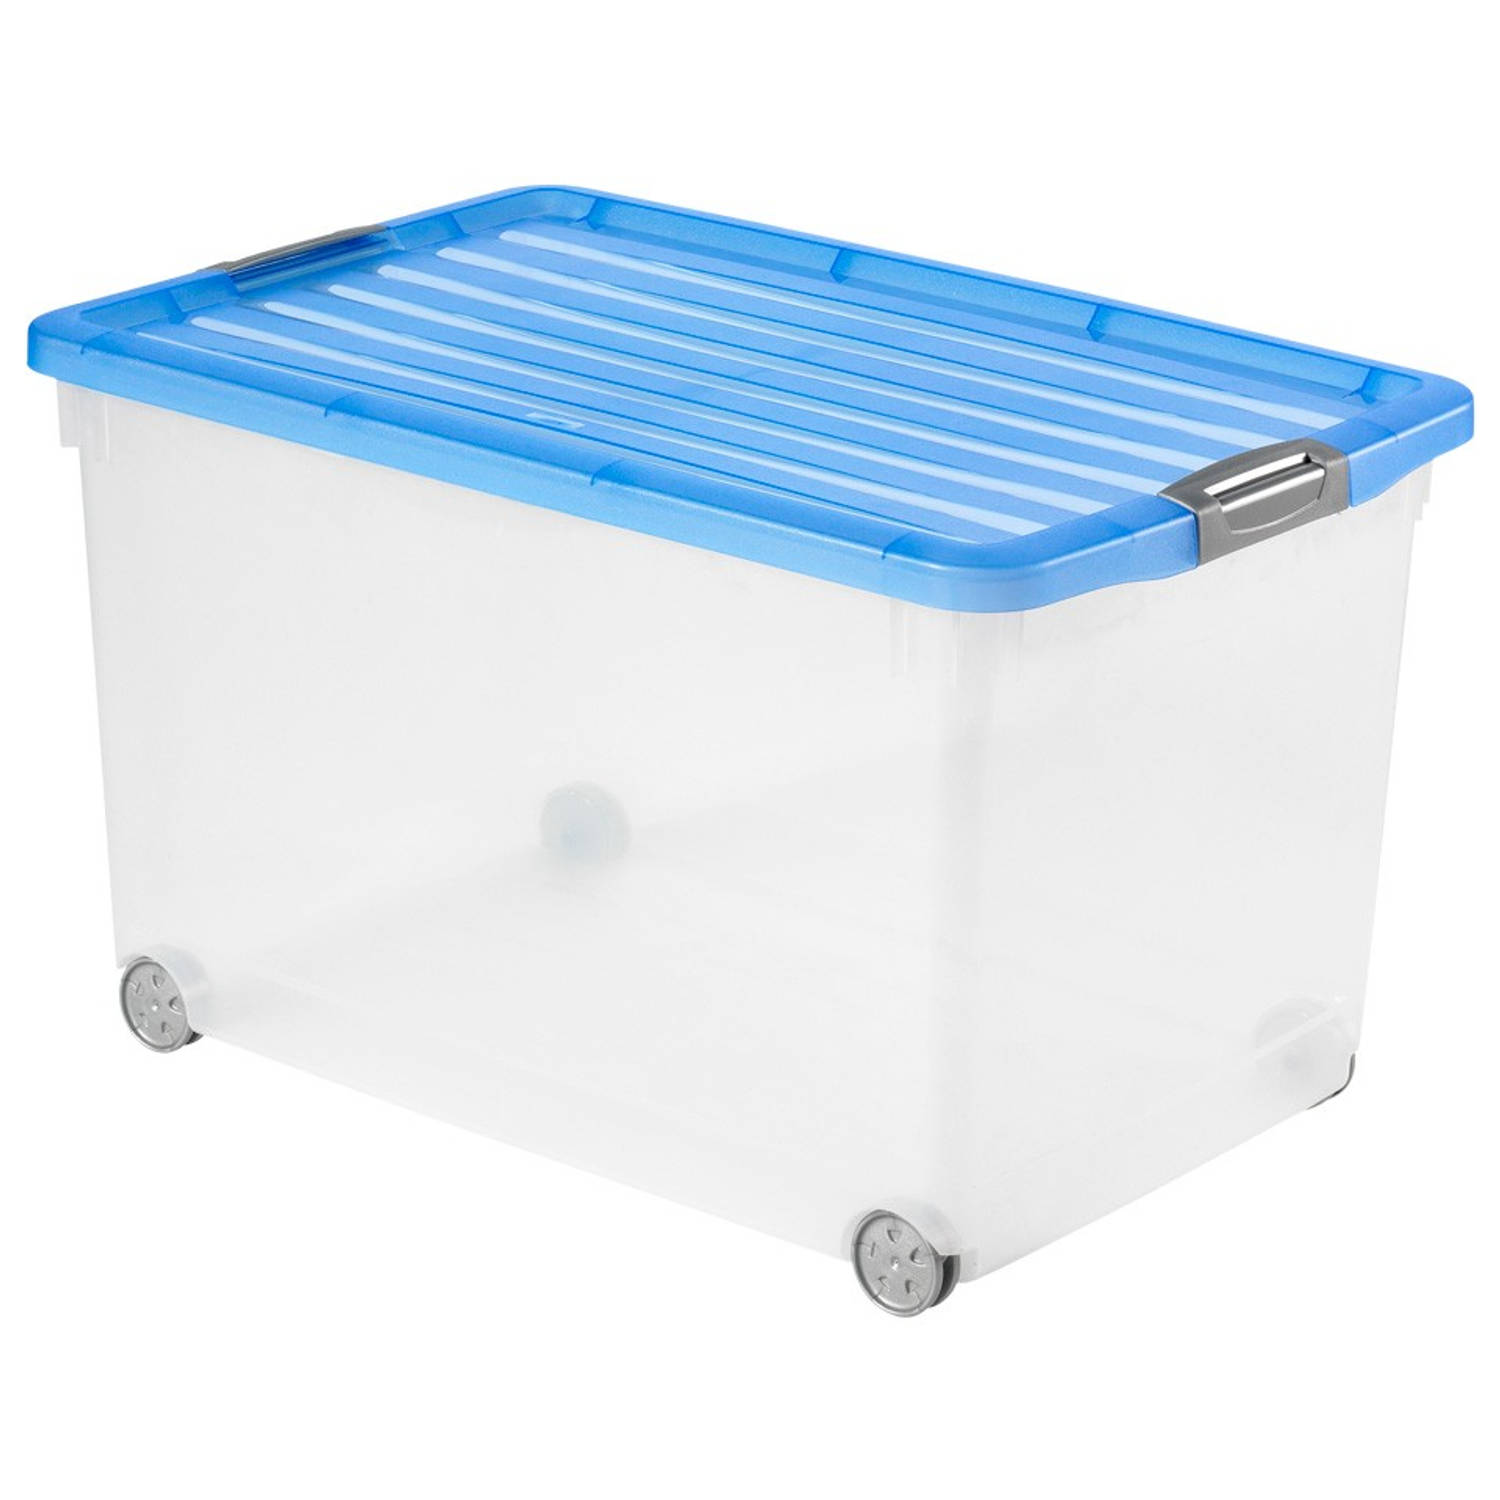 Curver Click'n Fit opbergbox 60 liter - blauw